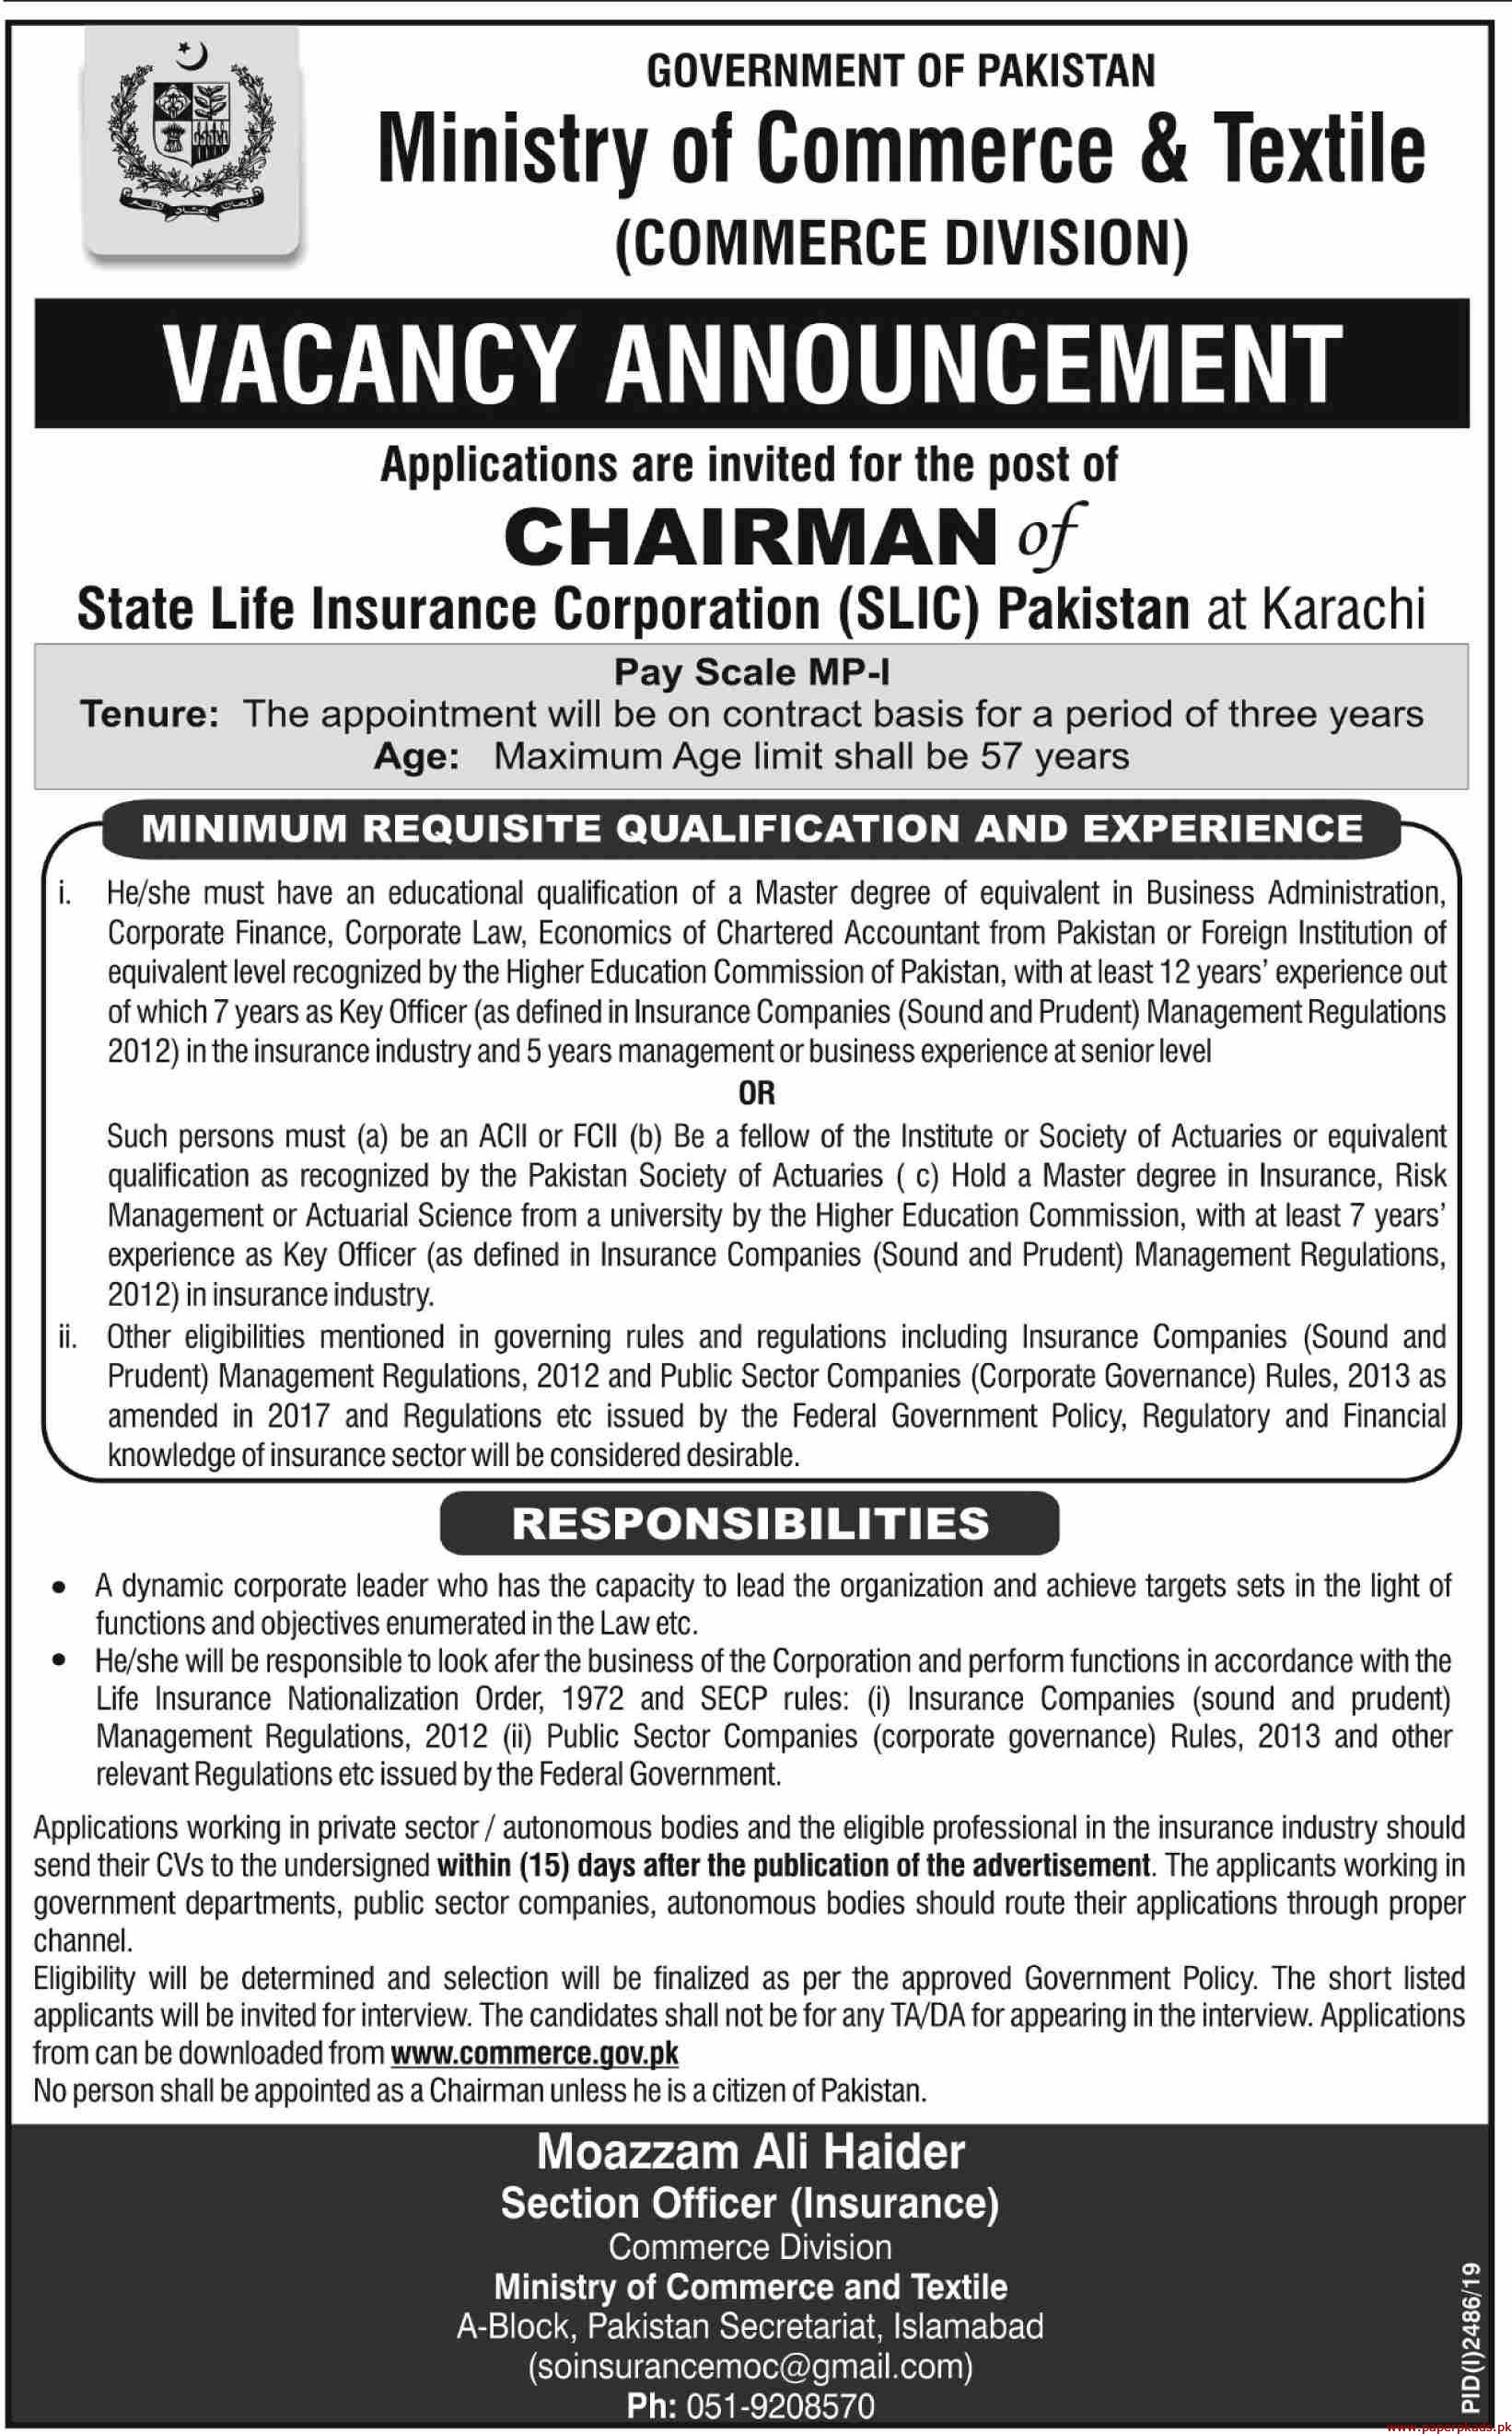 Ministry of Commerce & Textile Jobs 2019 Latest